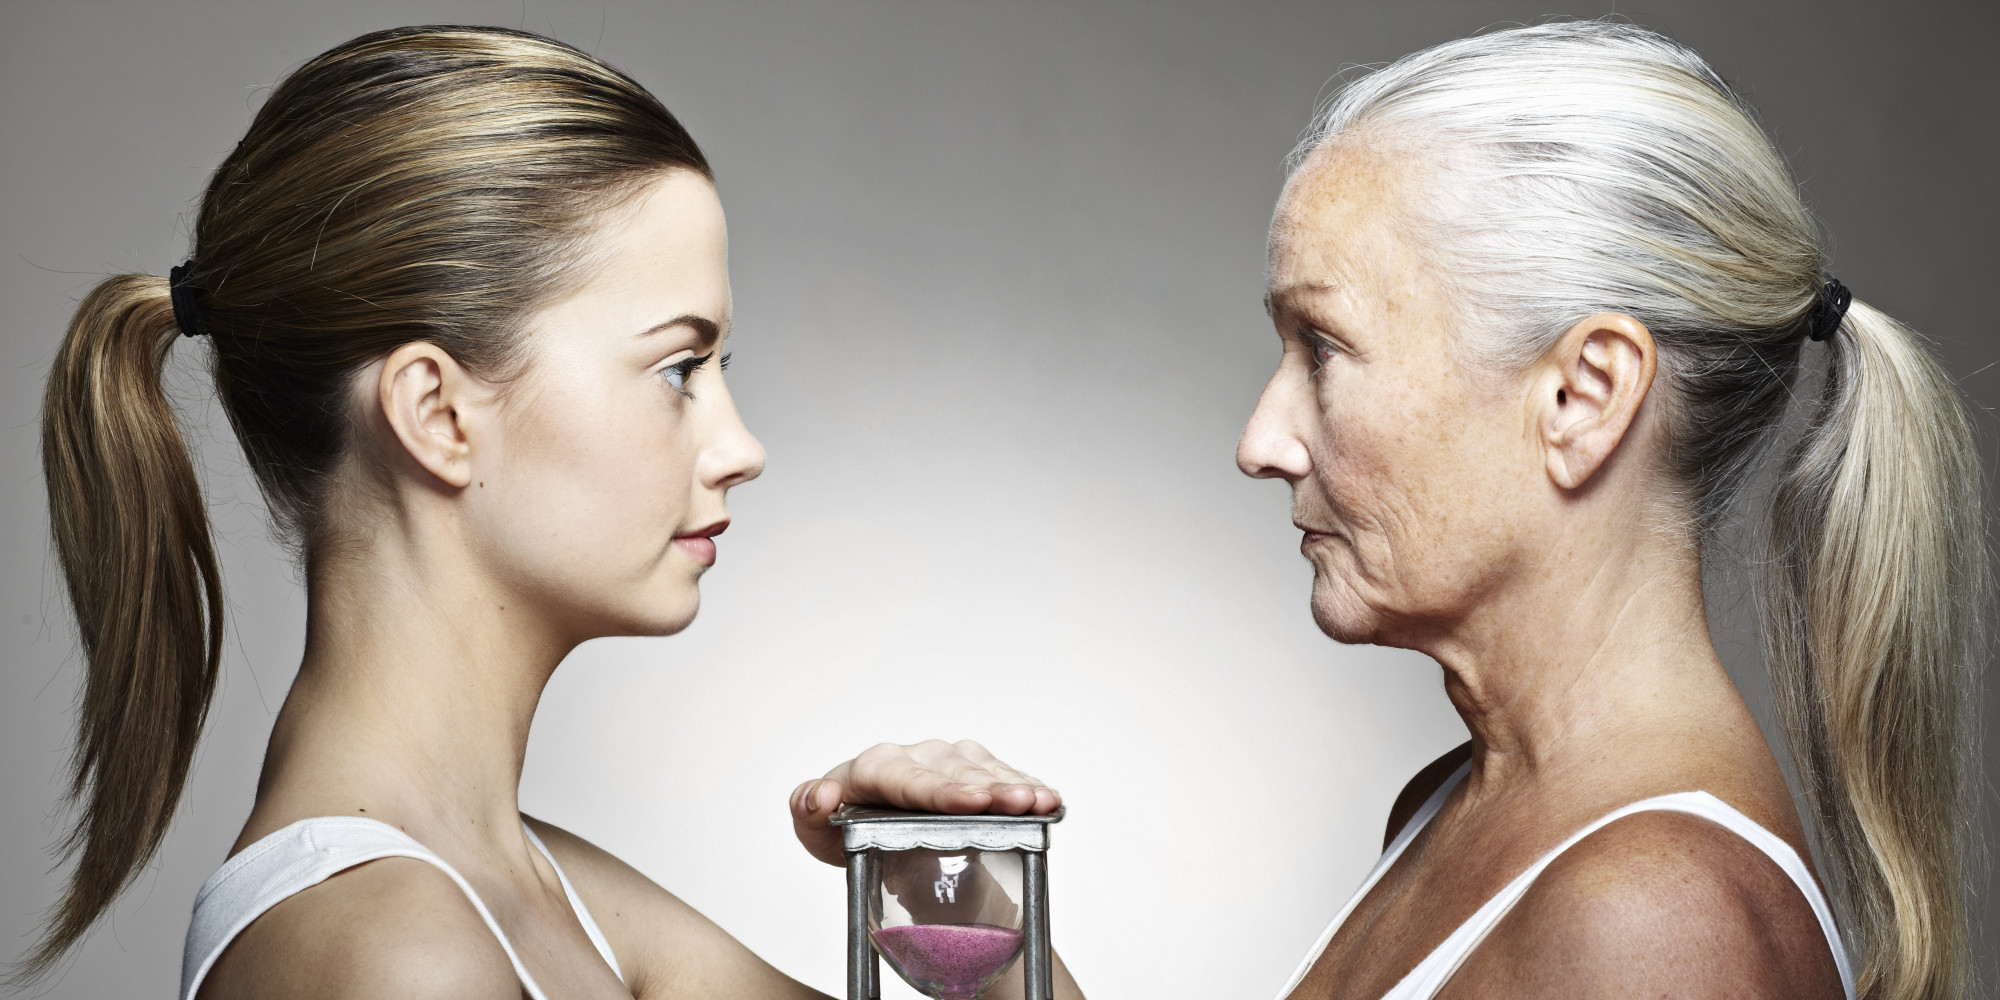 Younger and older woman with hourglass